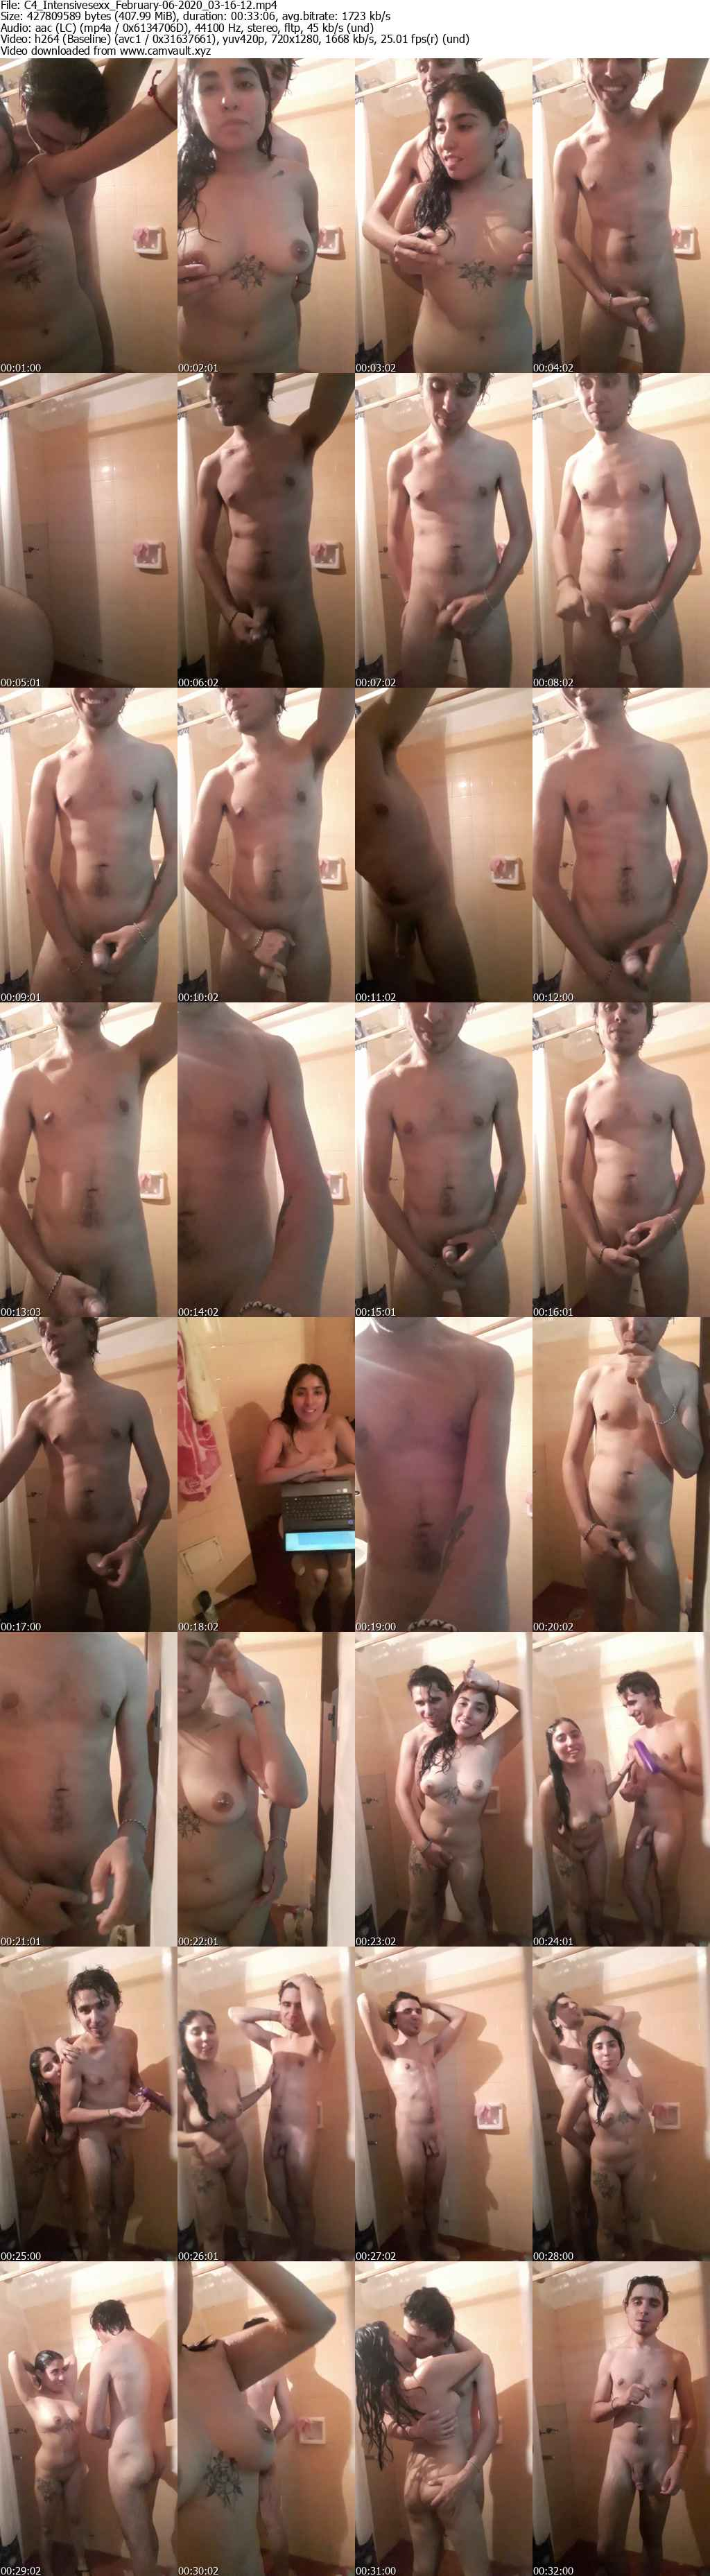 Video preview for model Intensivesexx